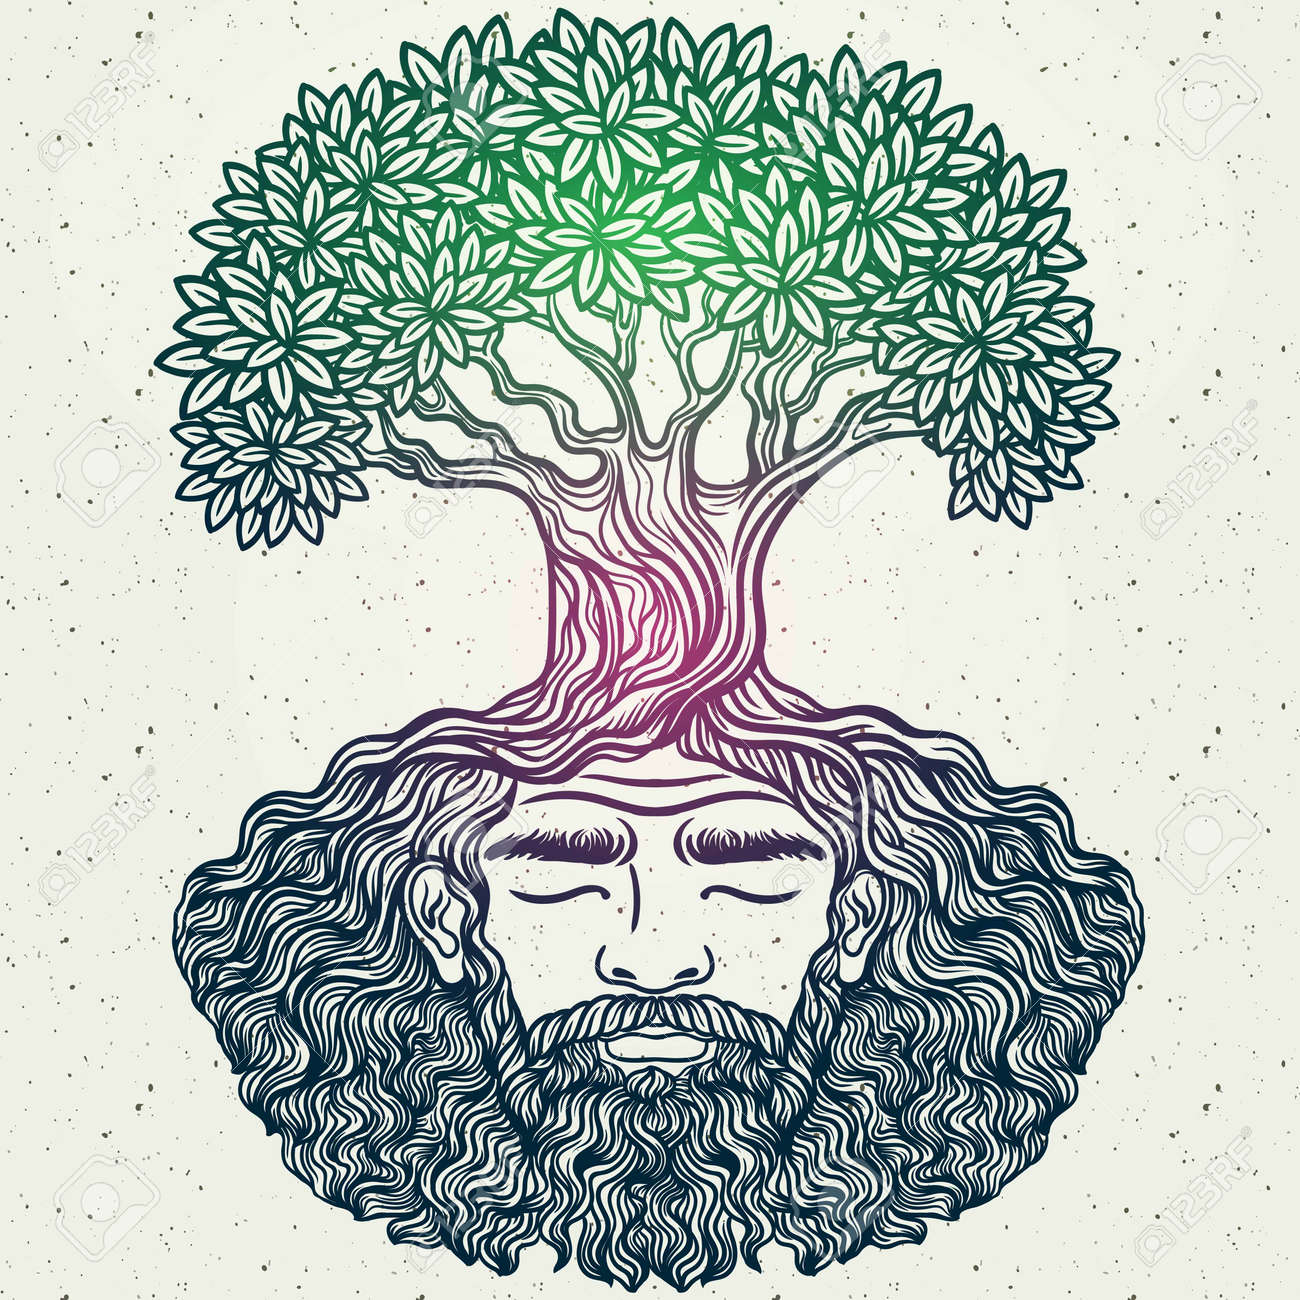 Bearded man. Allegorical tree spirit.Beard of the roots.For hipster tattoo, coloring for adults,eco design,t-shirt print, protect the environment. Pattern, zentangle,line art. Magic, Boho chik, hippie - 58752759